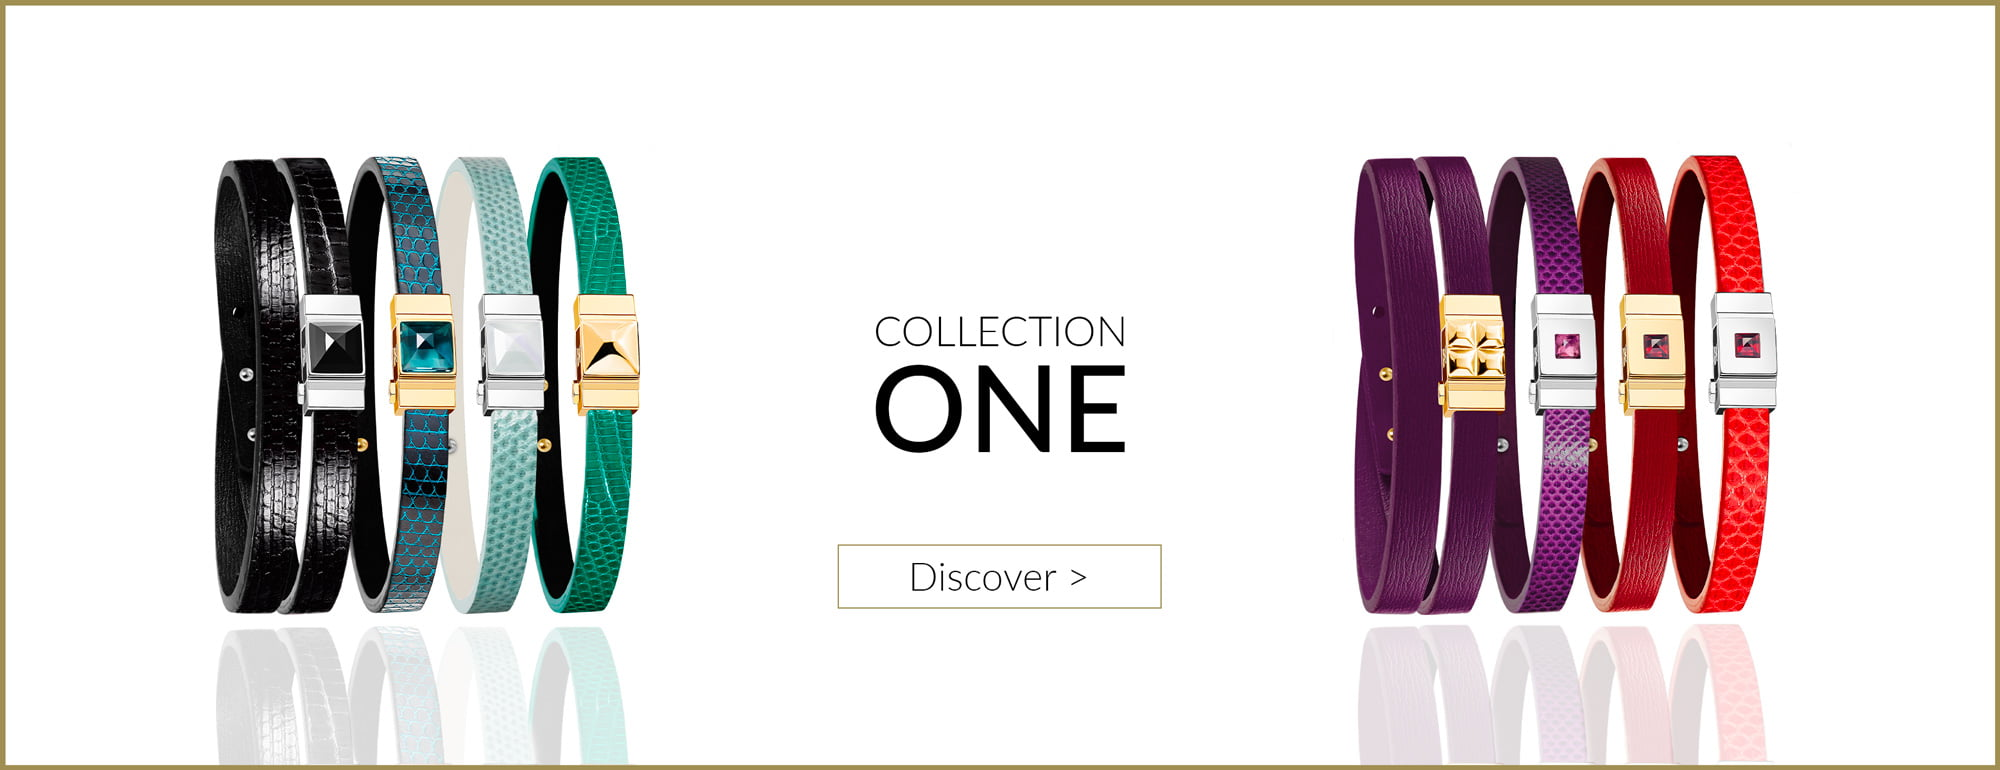 Collection-one-destock-uk